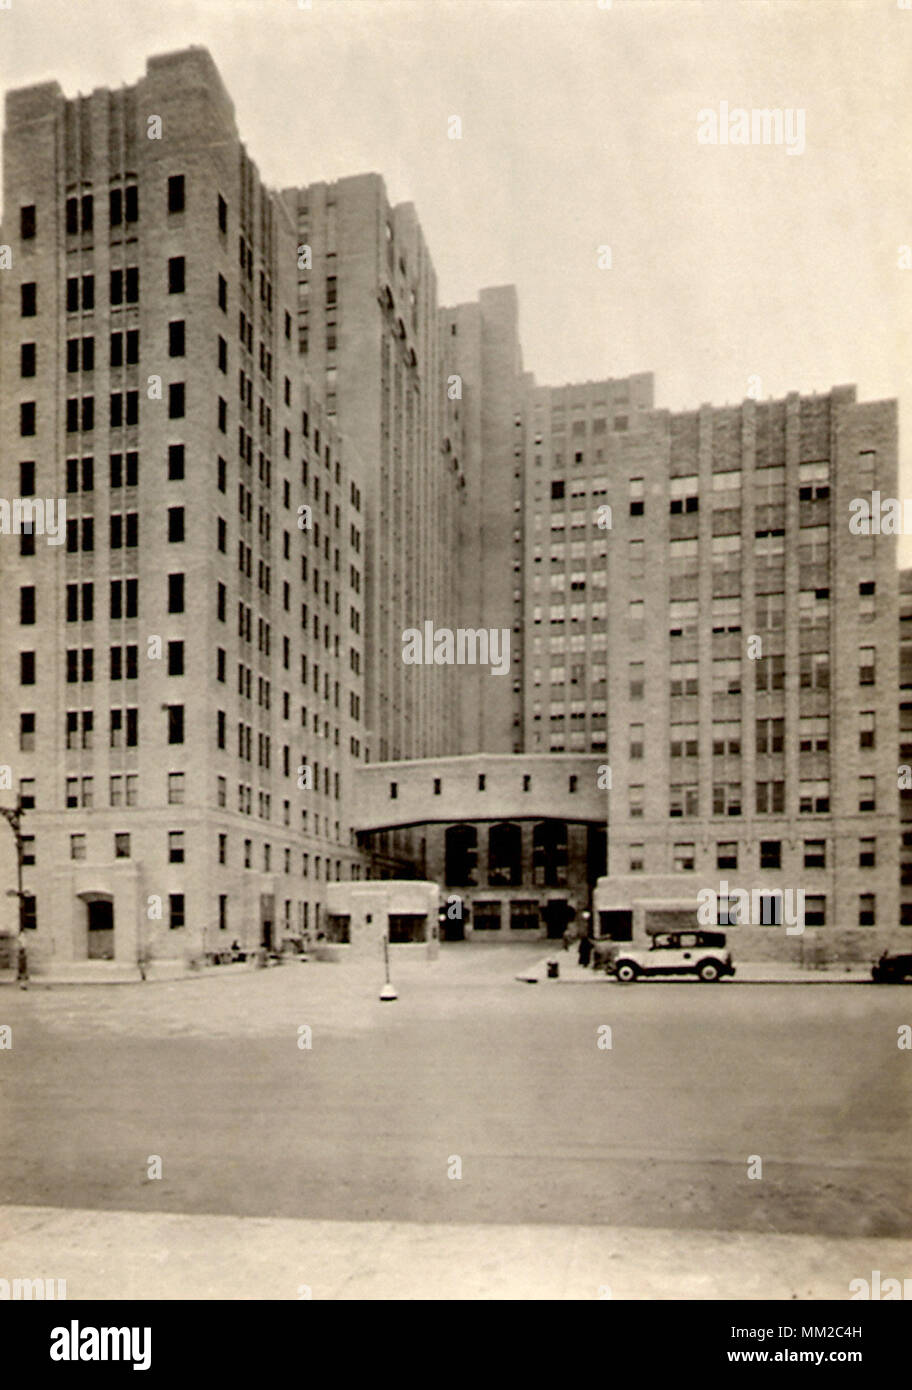 The Medical Center. New York City. 1935 Stock Photo